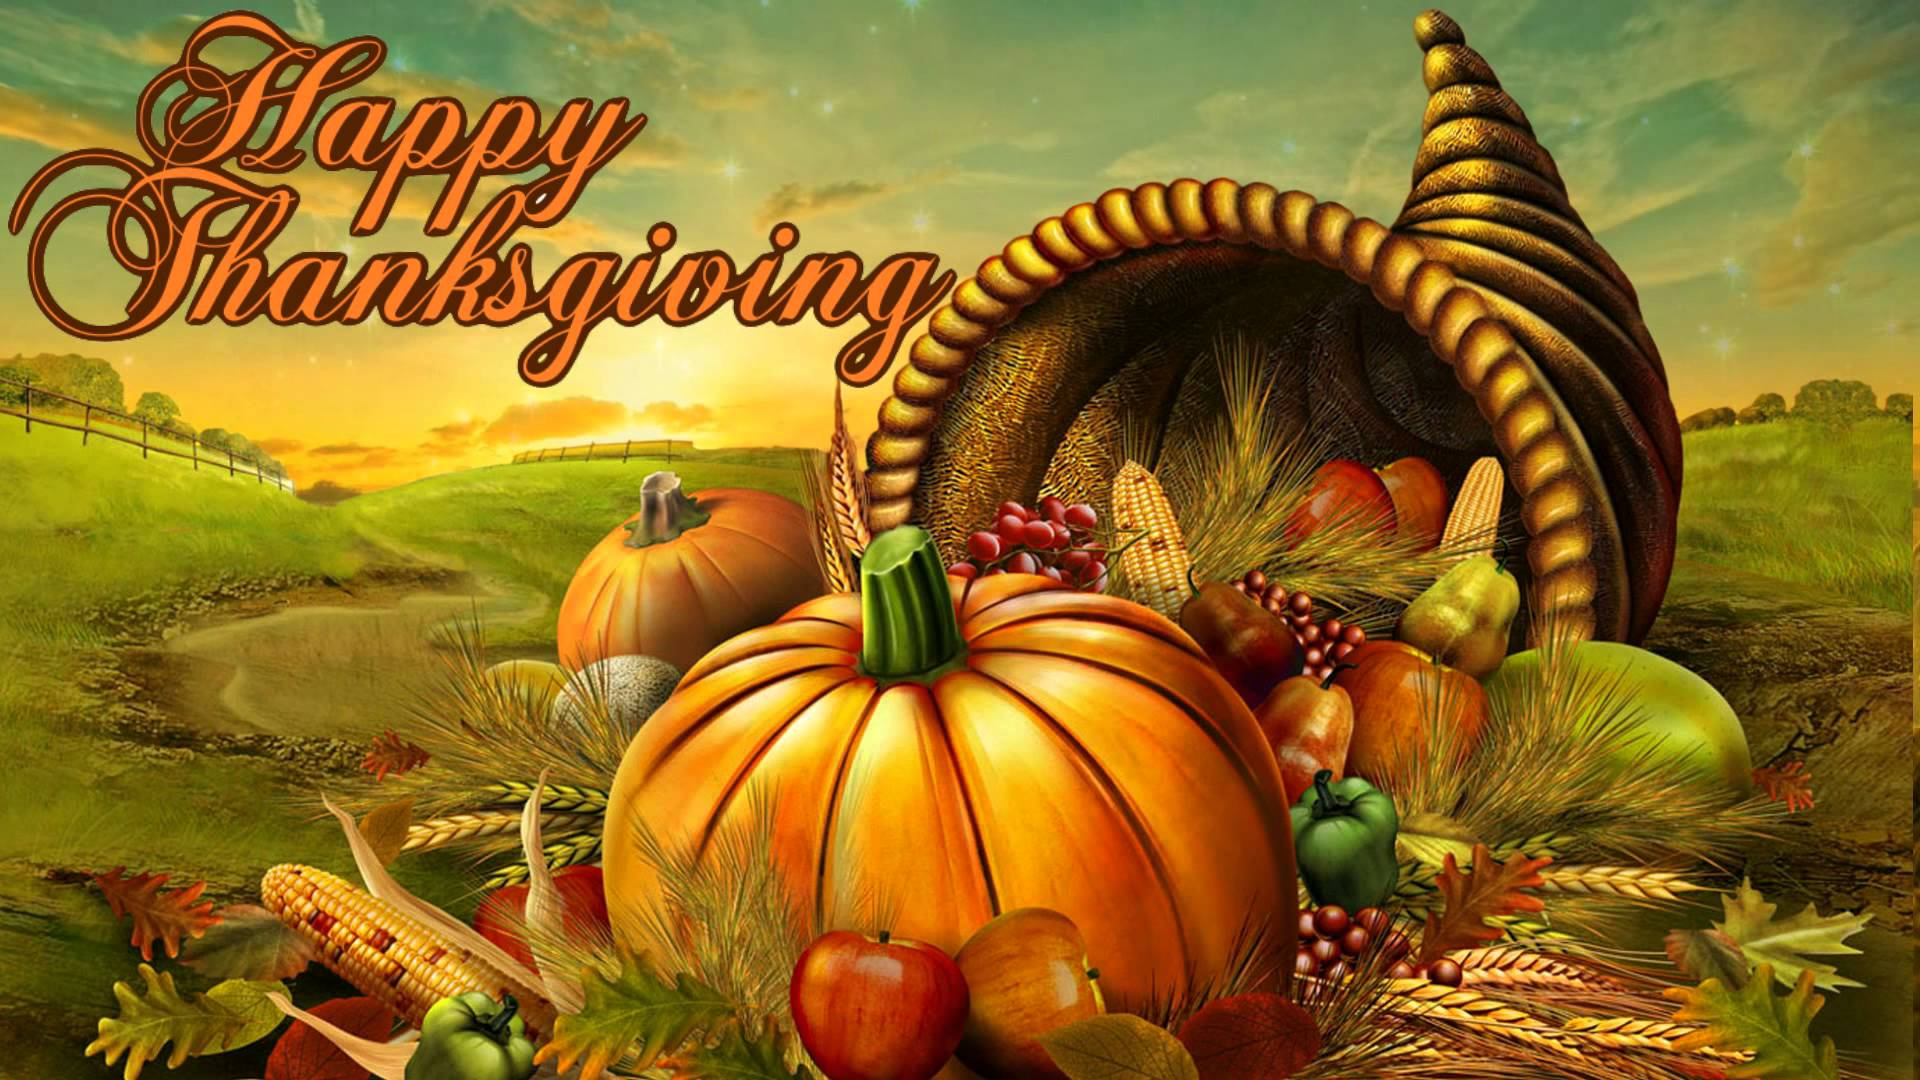 [78+] Free Thanksgiving Wallpaper For Computer on ...